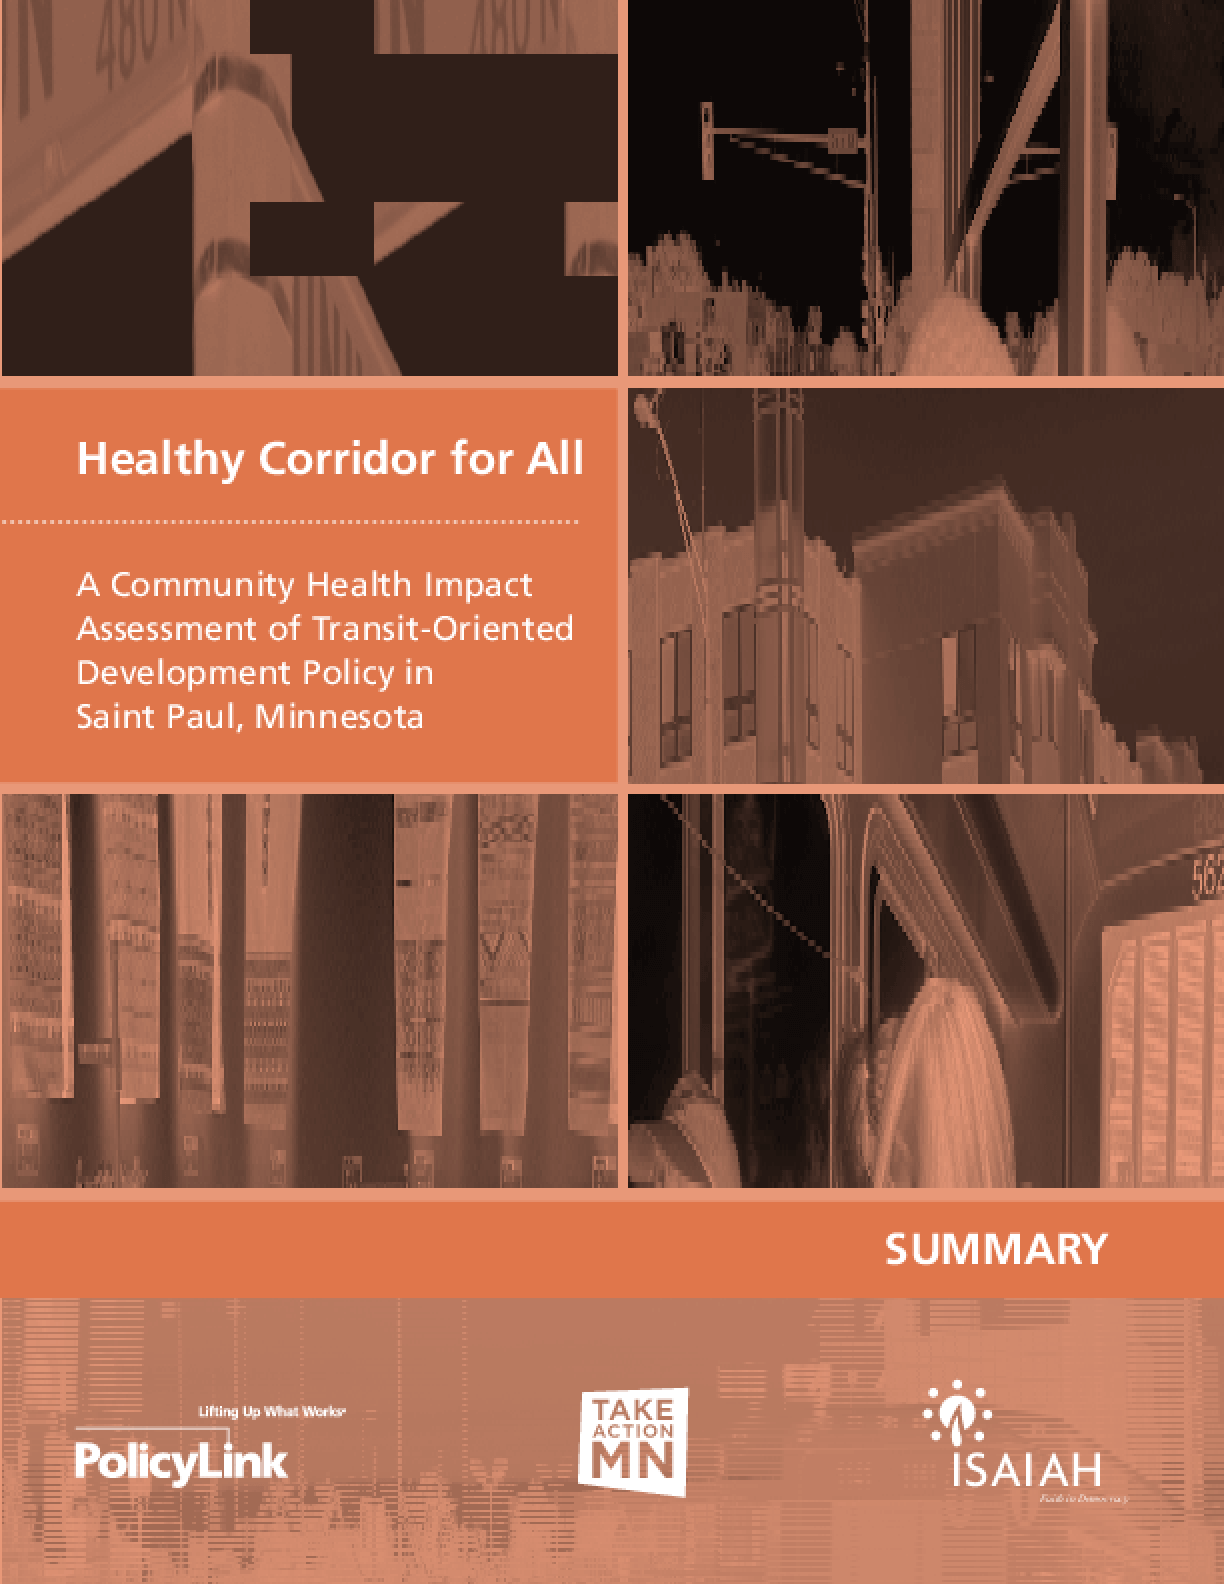 Healthy Corridor for All: A Community Health Impact Assessment of Transit-Oriented Development Policy in Saint Paul, Minnesota